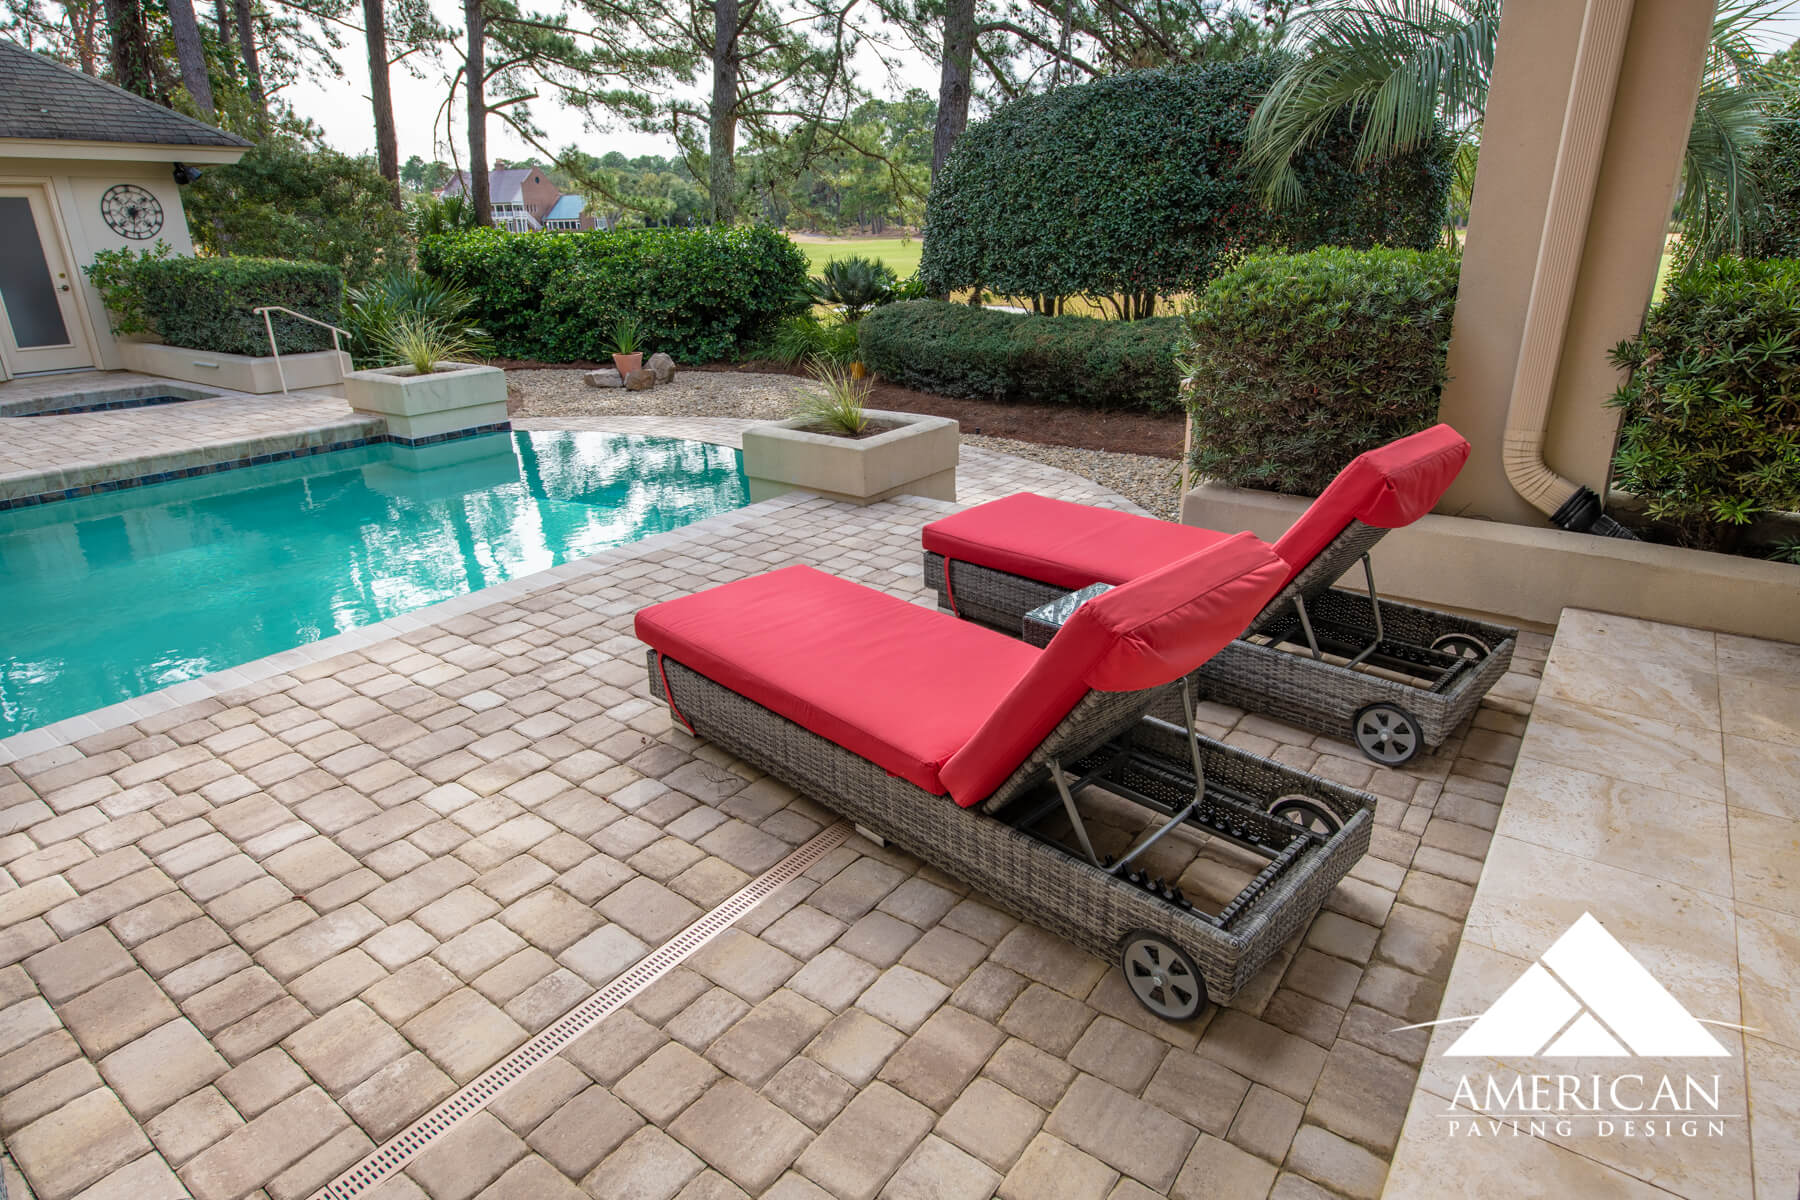 Resurface Your Pool Deck With Brick Pavers - Hilton Head Island, SC